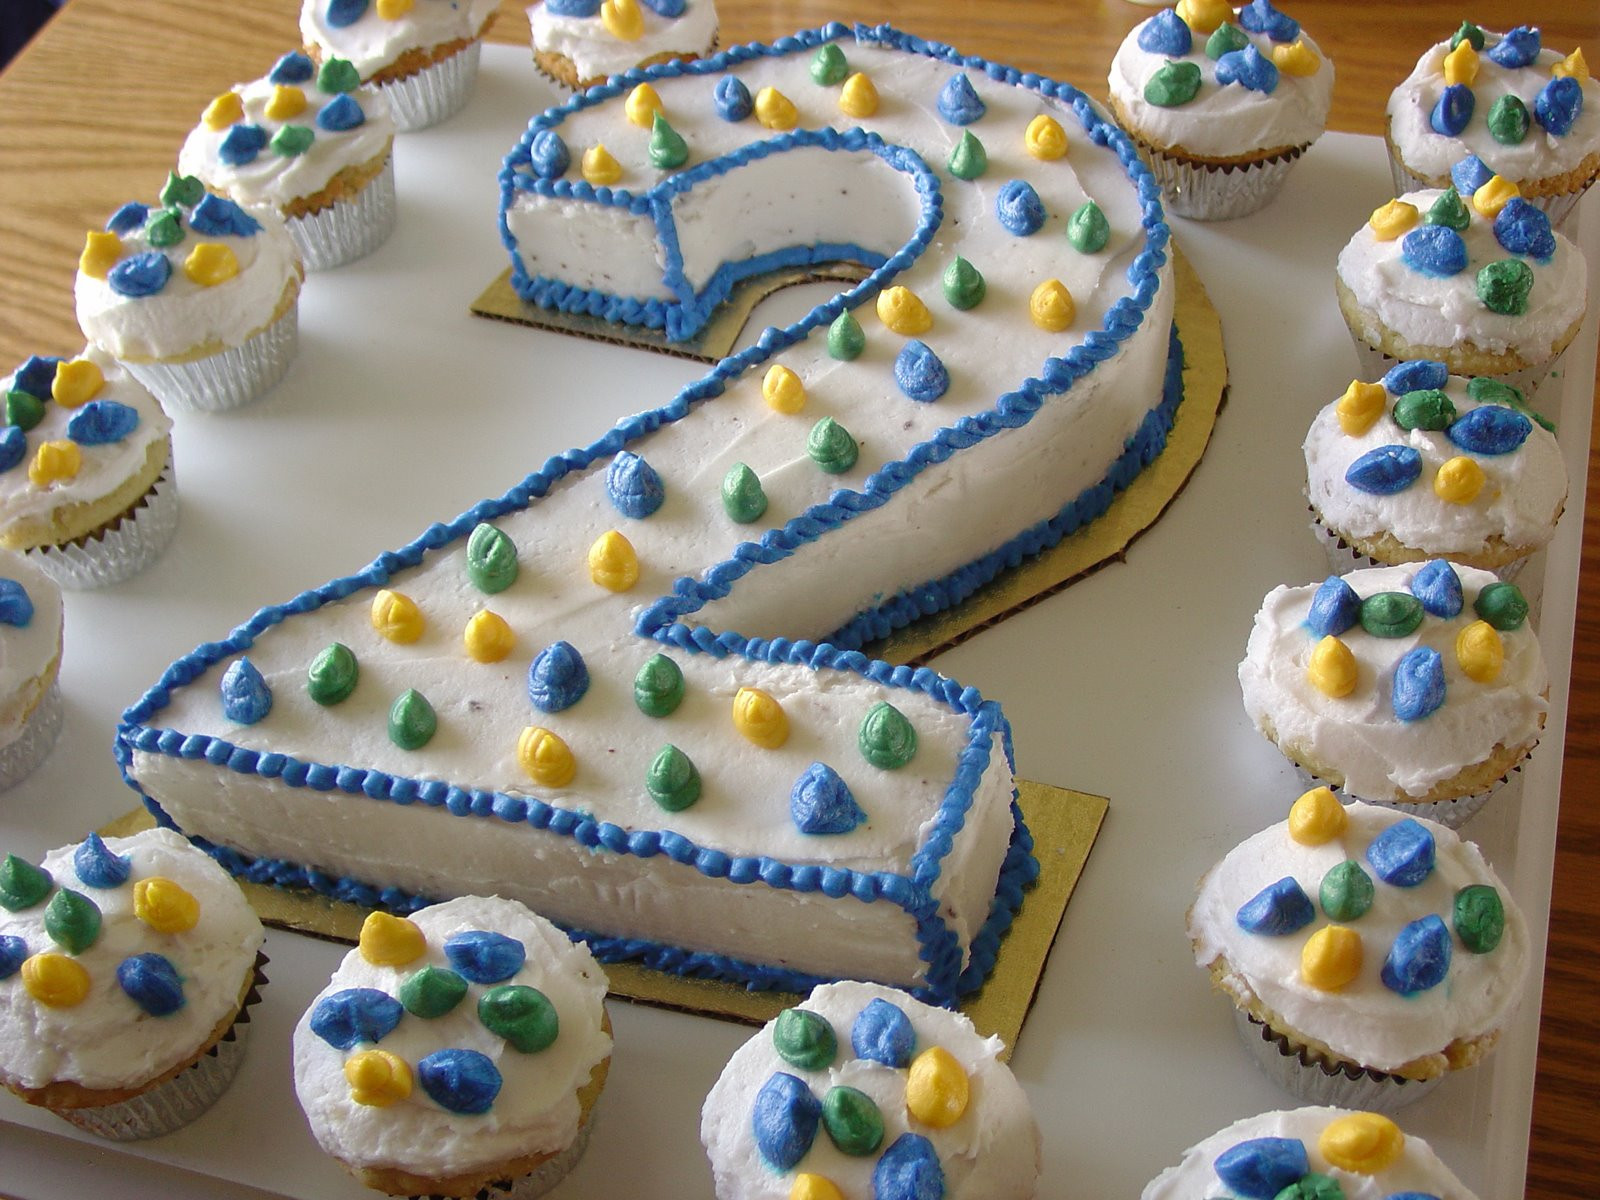 Food Ideas For A 2 Year Old Birthday Party  The Junto Enters the Terrible Twos The Junto